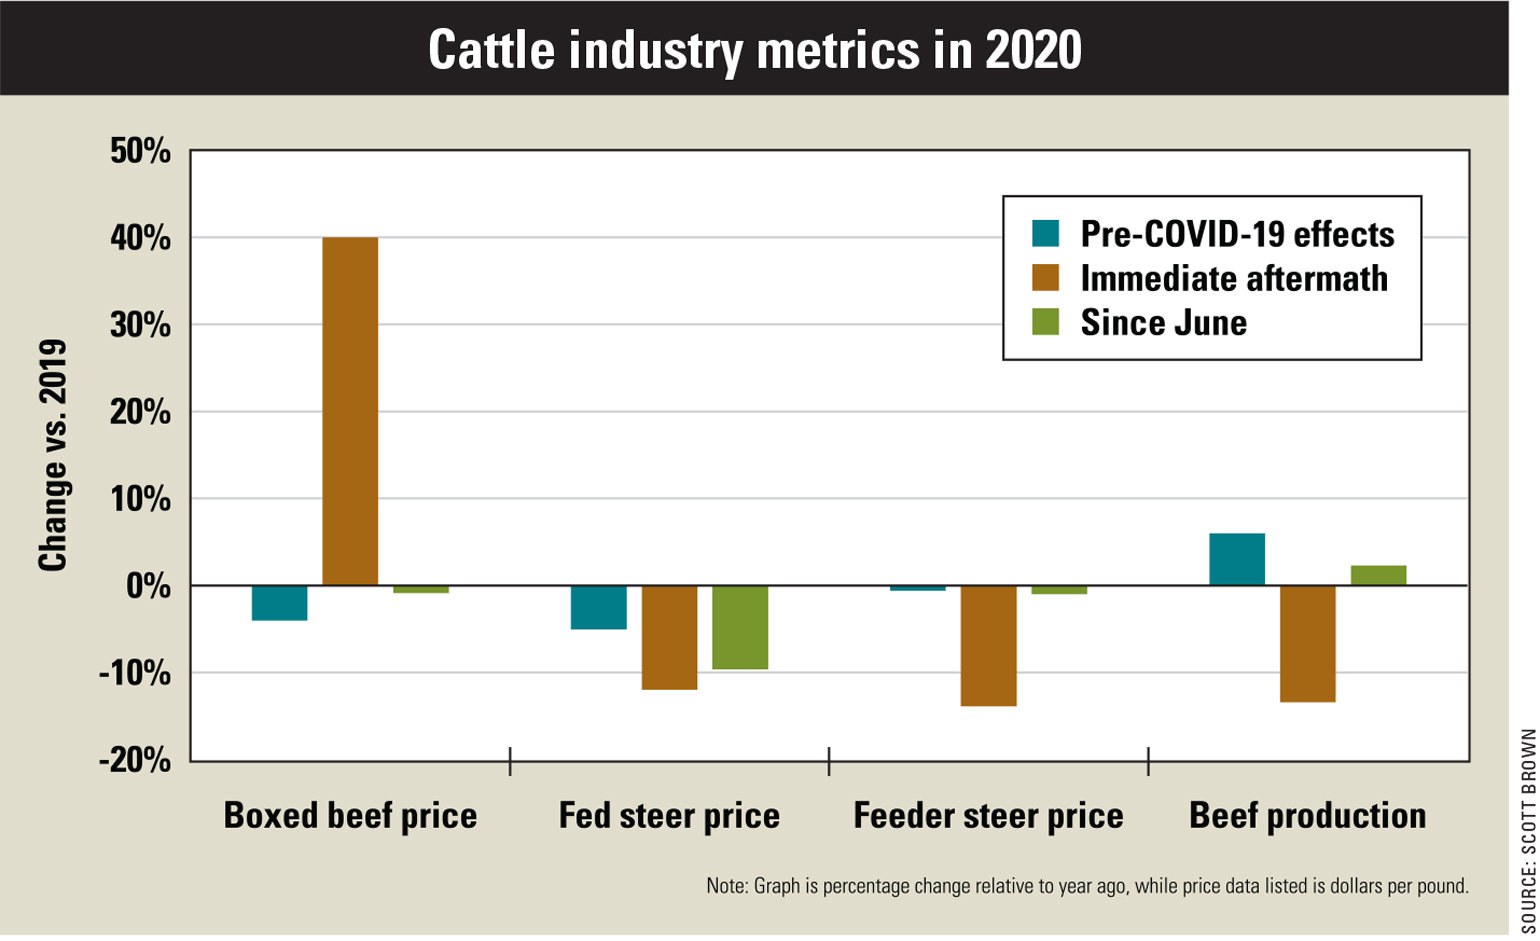 A bar graph showing the change in prices for the cattle industry in 2020 relative to 2019